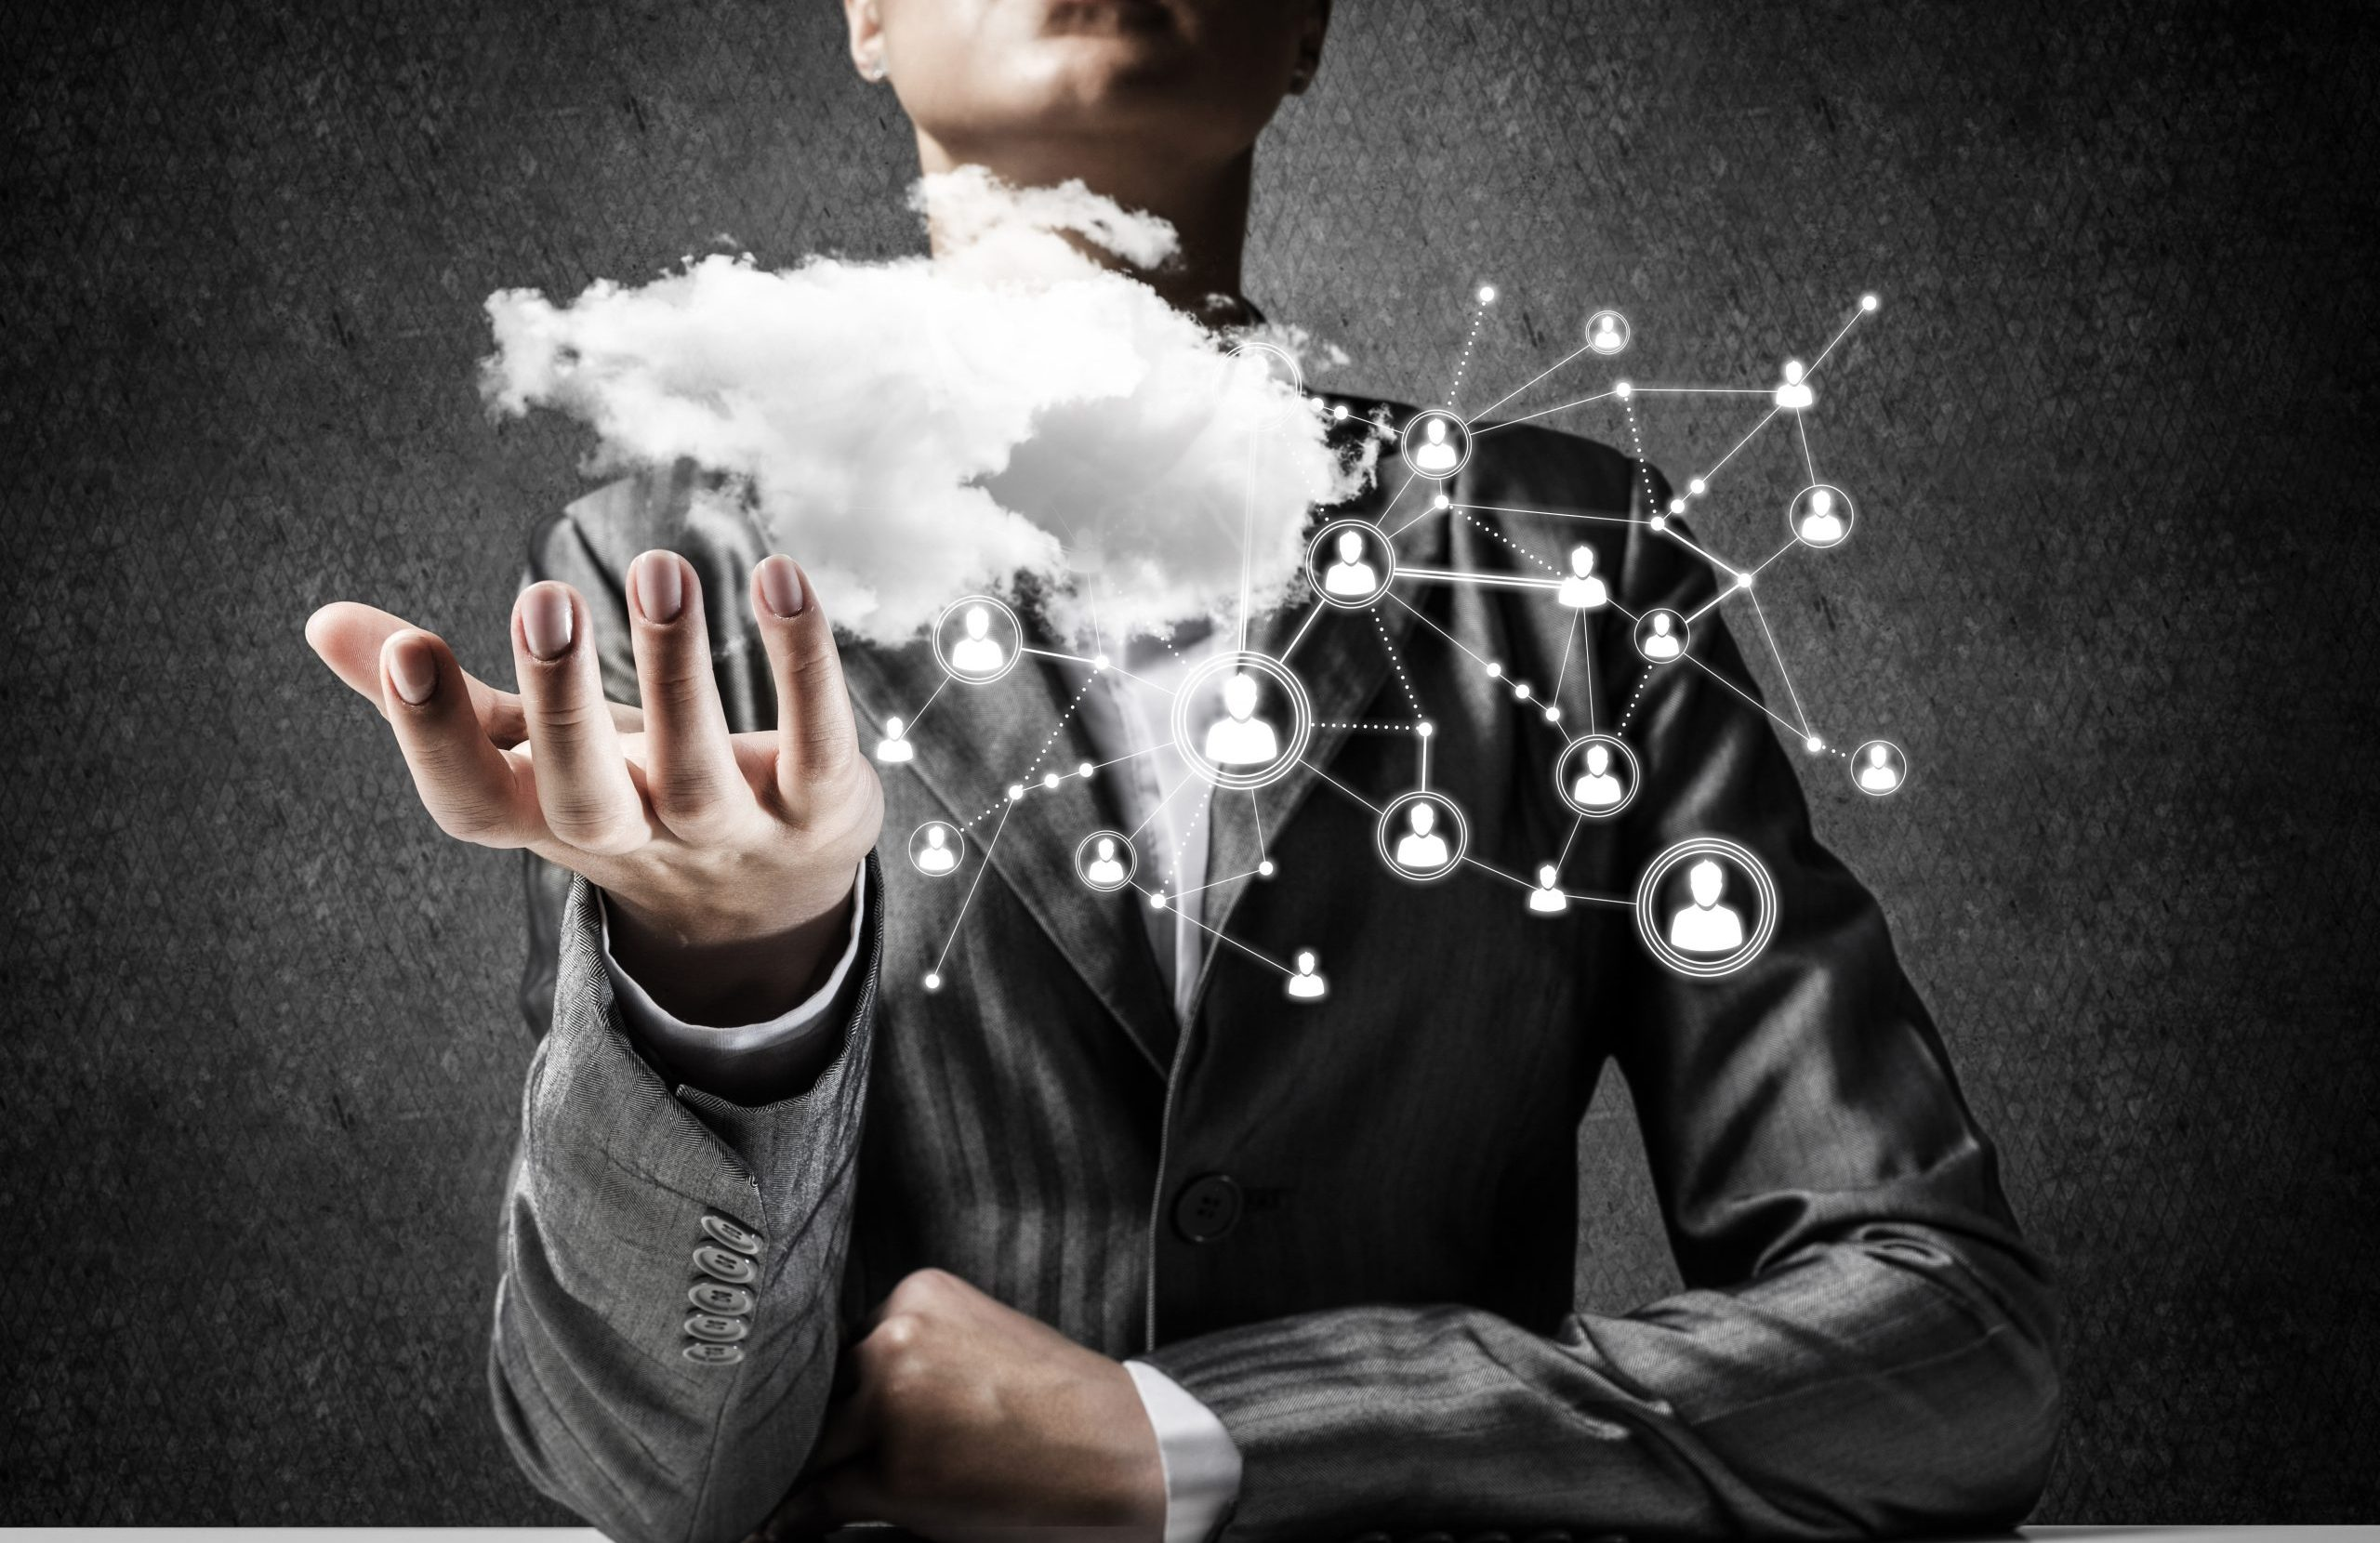 rmda-ss-businessman-suit-keeping-cloud-connections.5000.3500